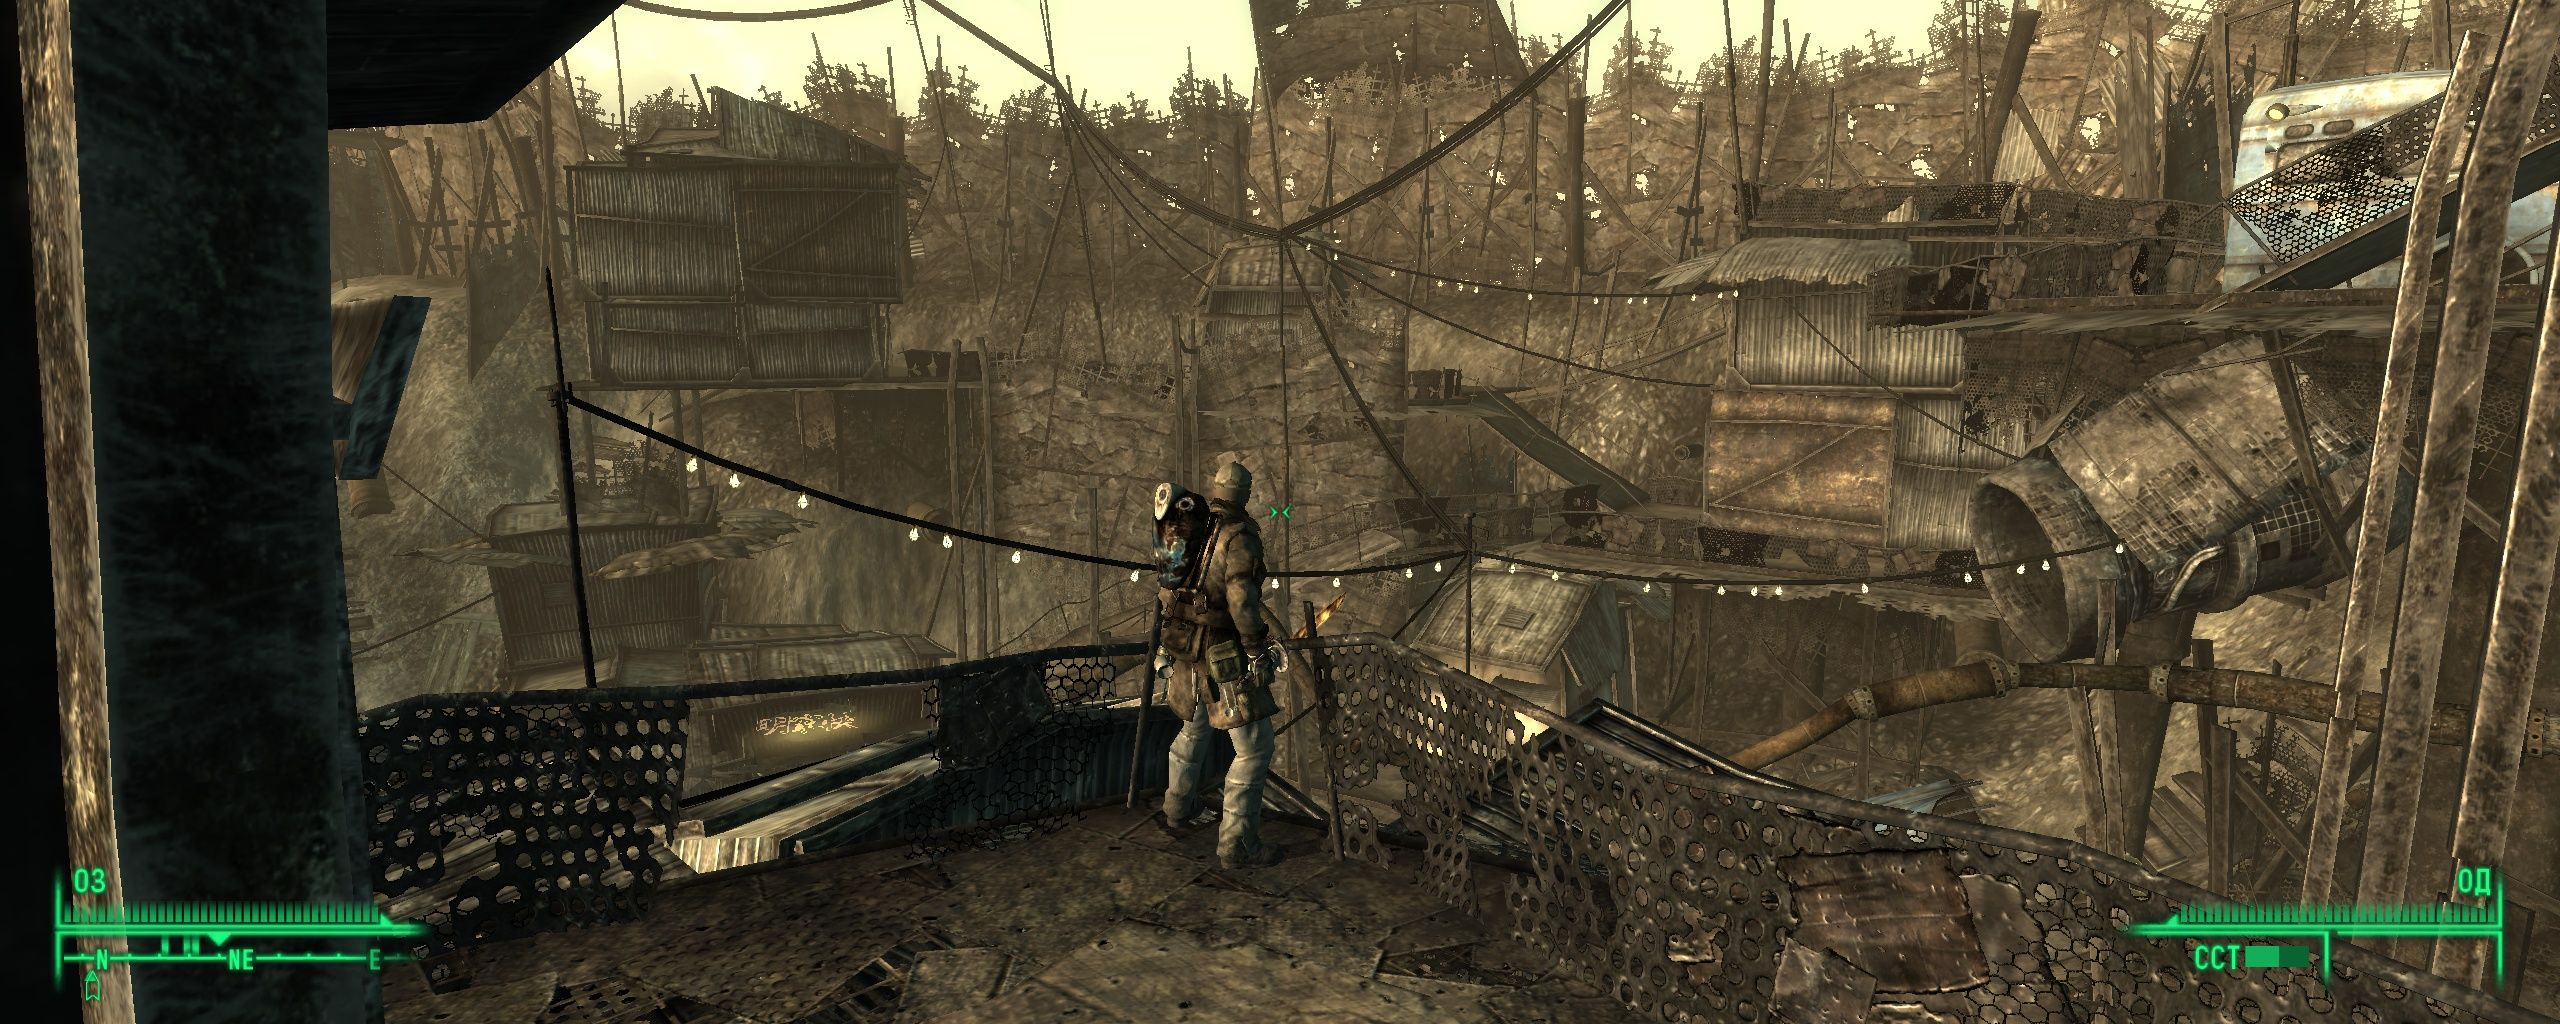 Fallout 3 Windows Dual monitor view (FOV 60).